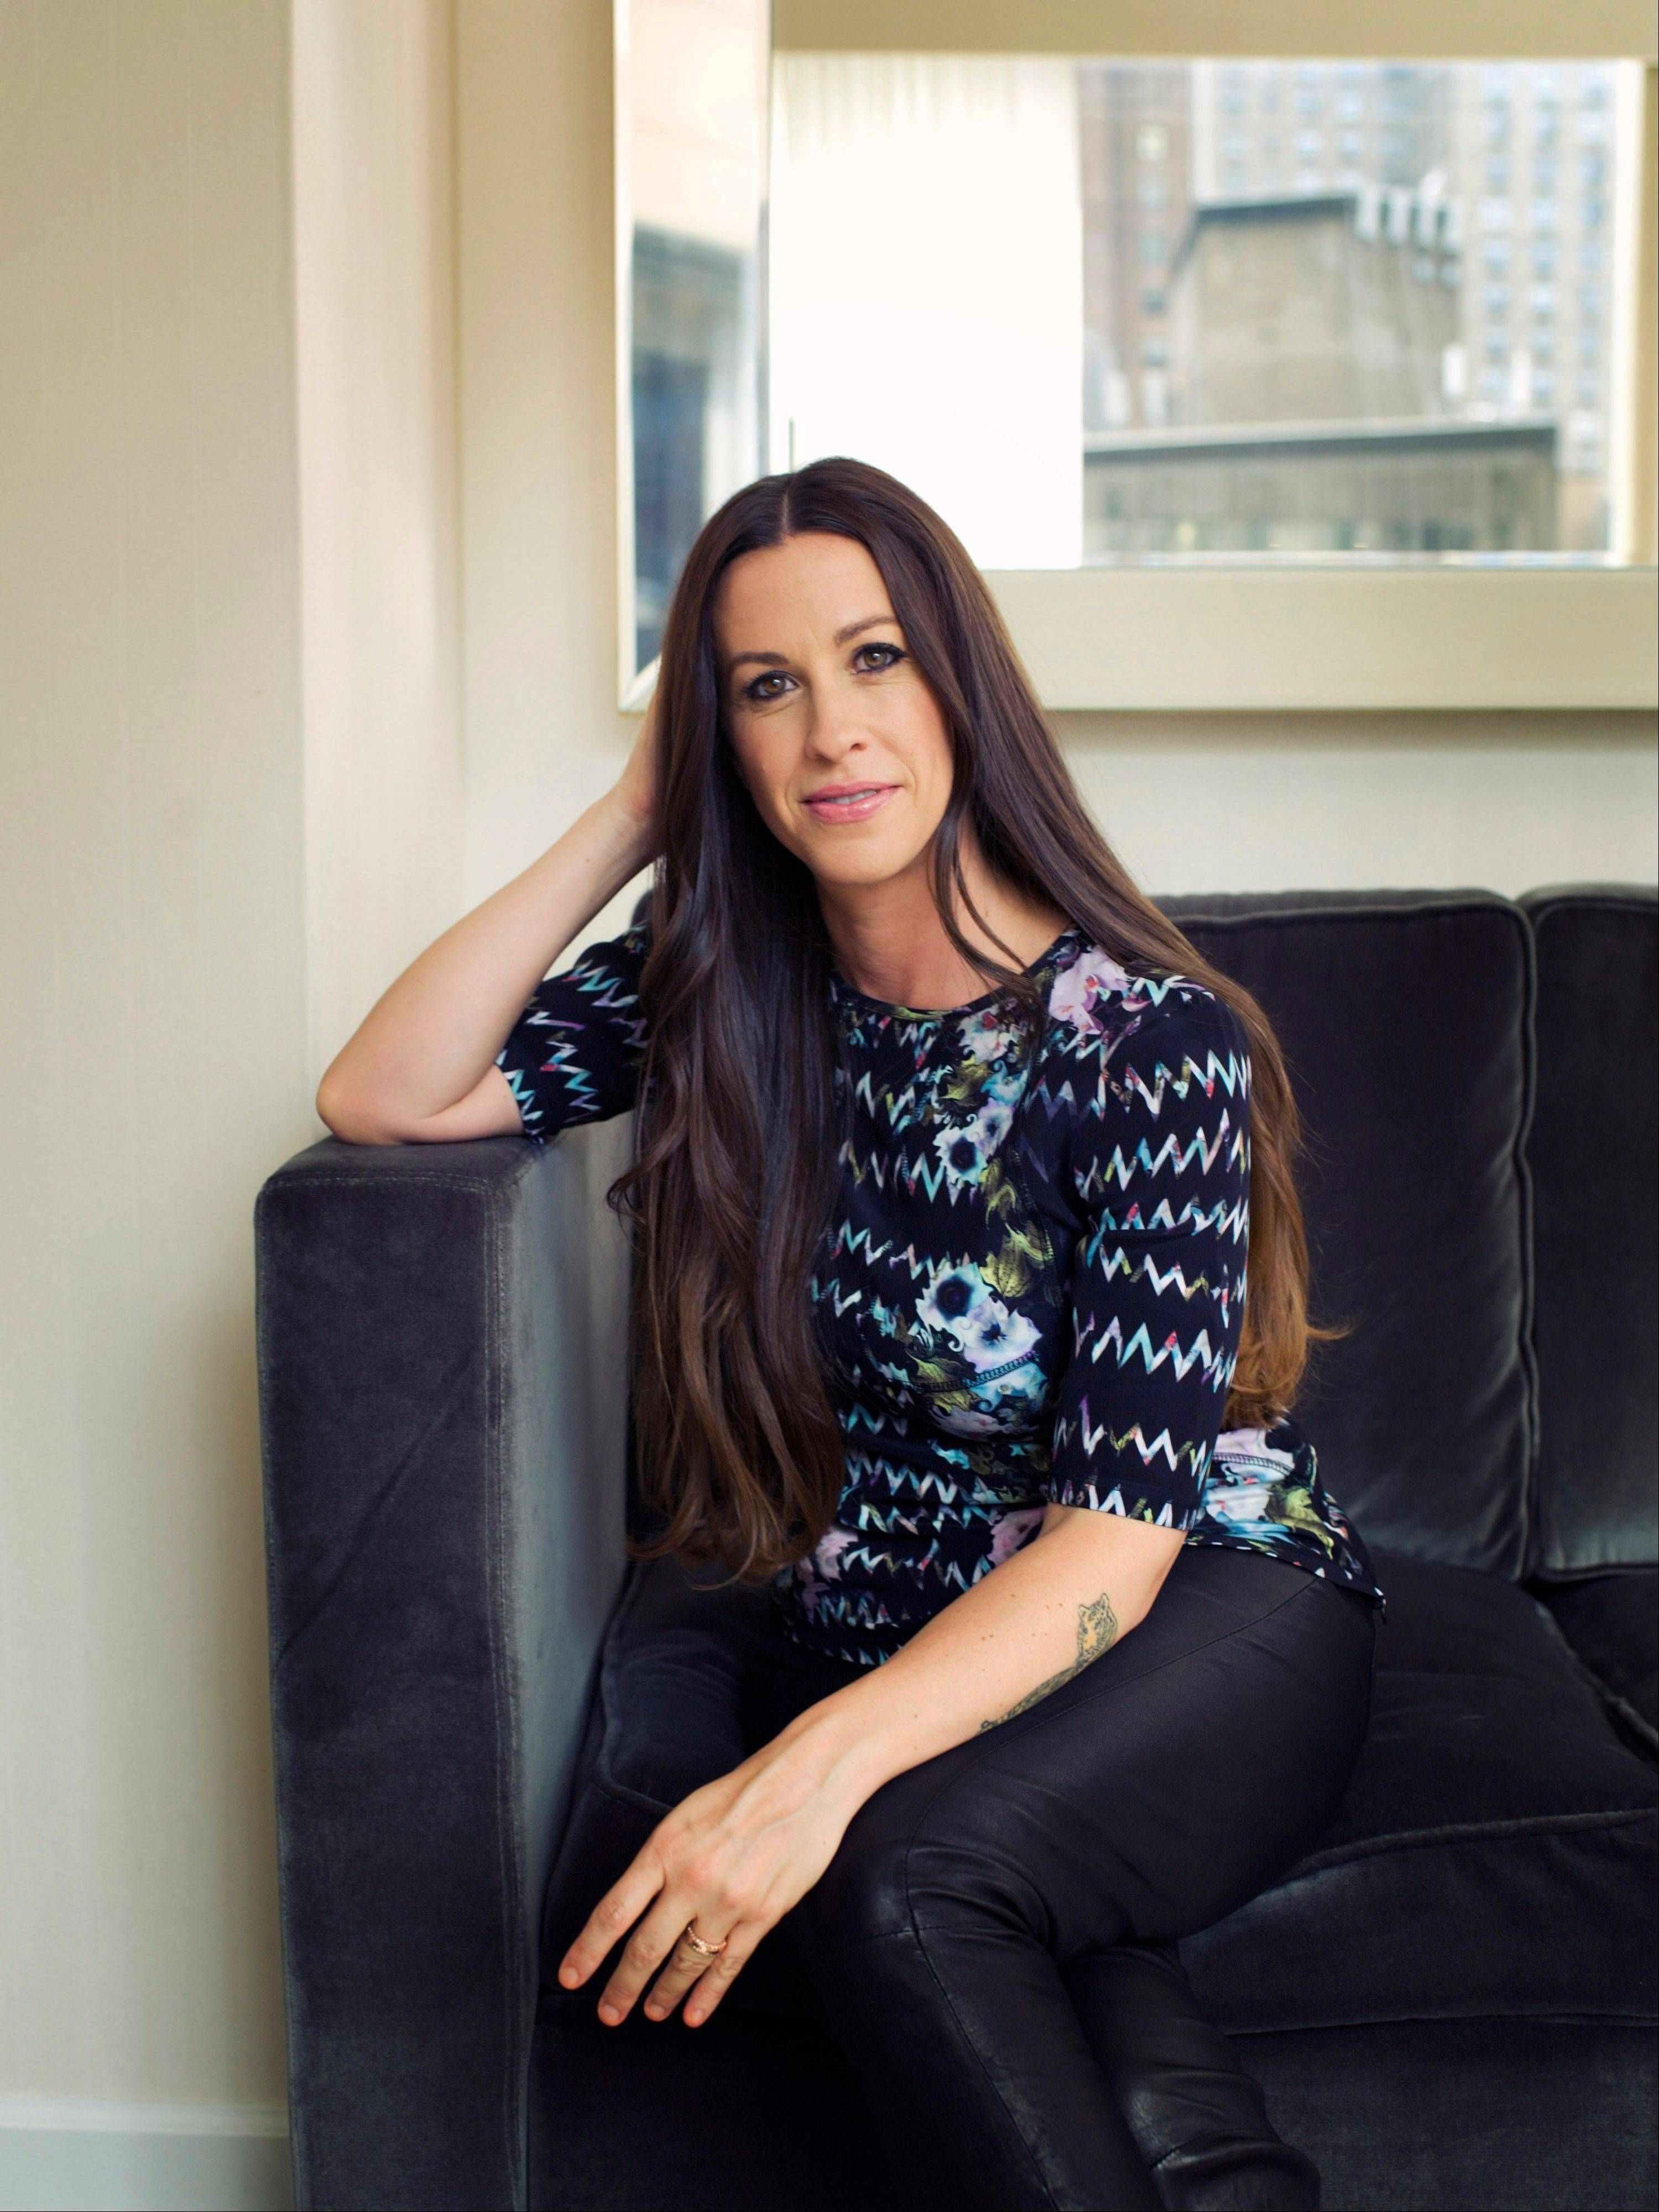 """There's a new climate that I'm noticing ... of women just being loved and respected and honored in a way that even 10 years (ago) I didn't notice,"" Alanis Morissette said recently."